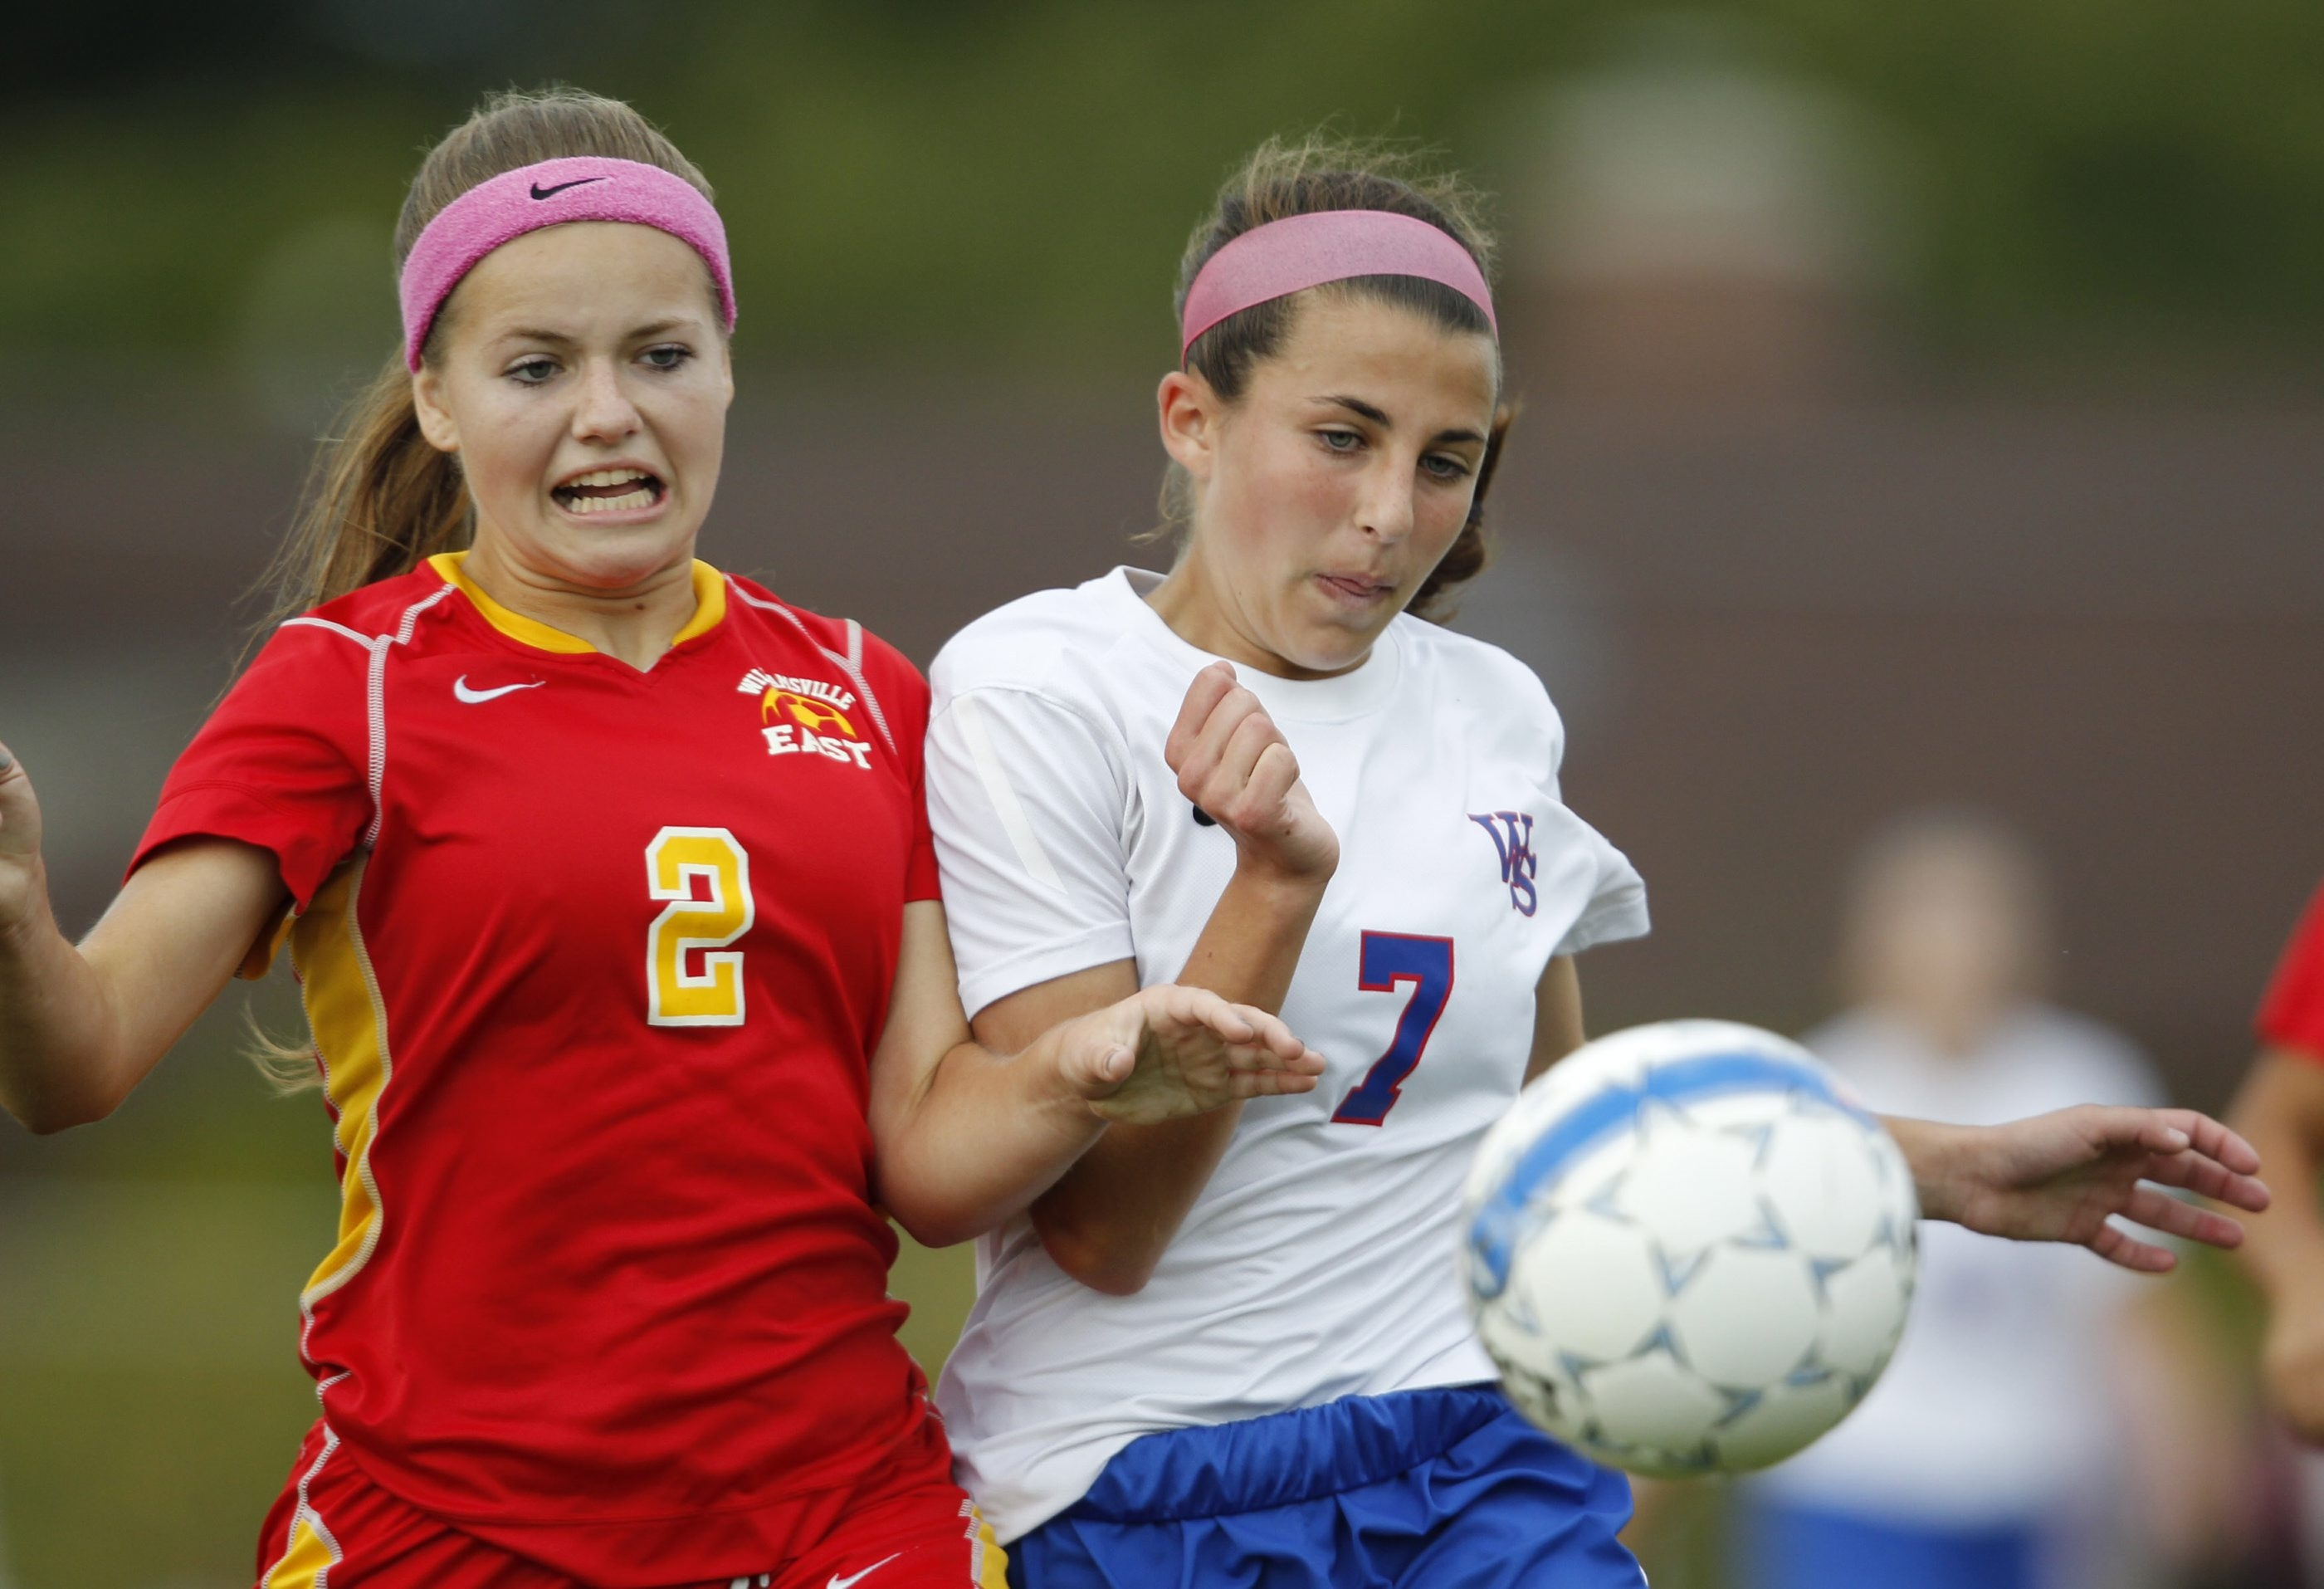 Williamsville South's Jamie Boyar (7) battles Williamsville East's Bridget Scioli during Monday's ECIC II contest, won by South, 3-1. The Billies, ranked No. 1 in WNY, move to 9-0.